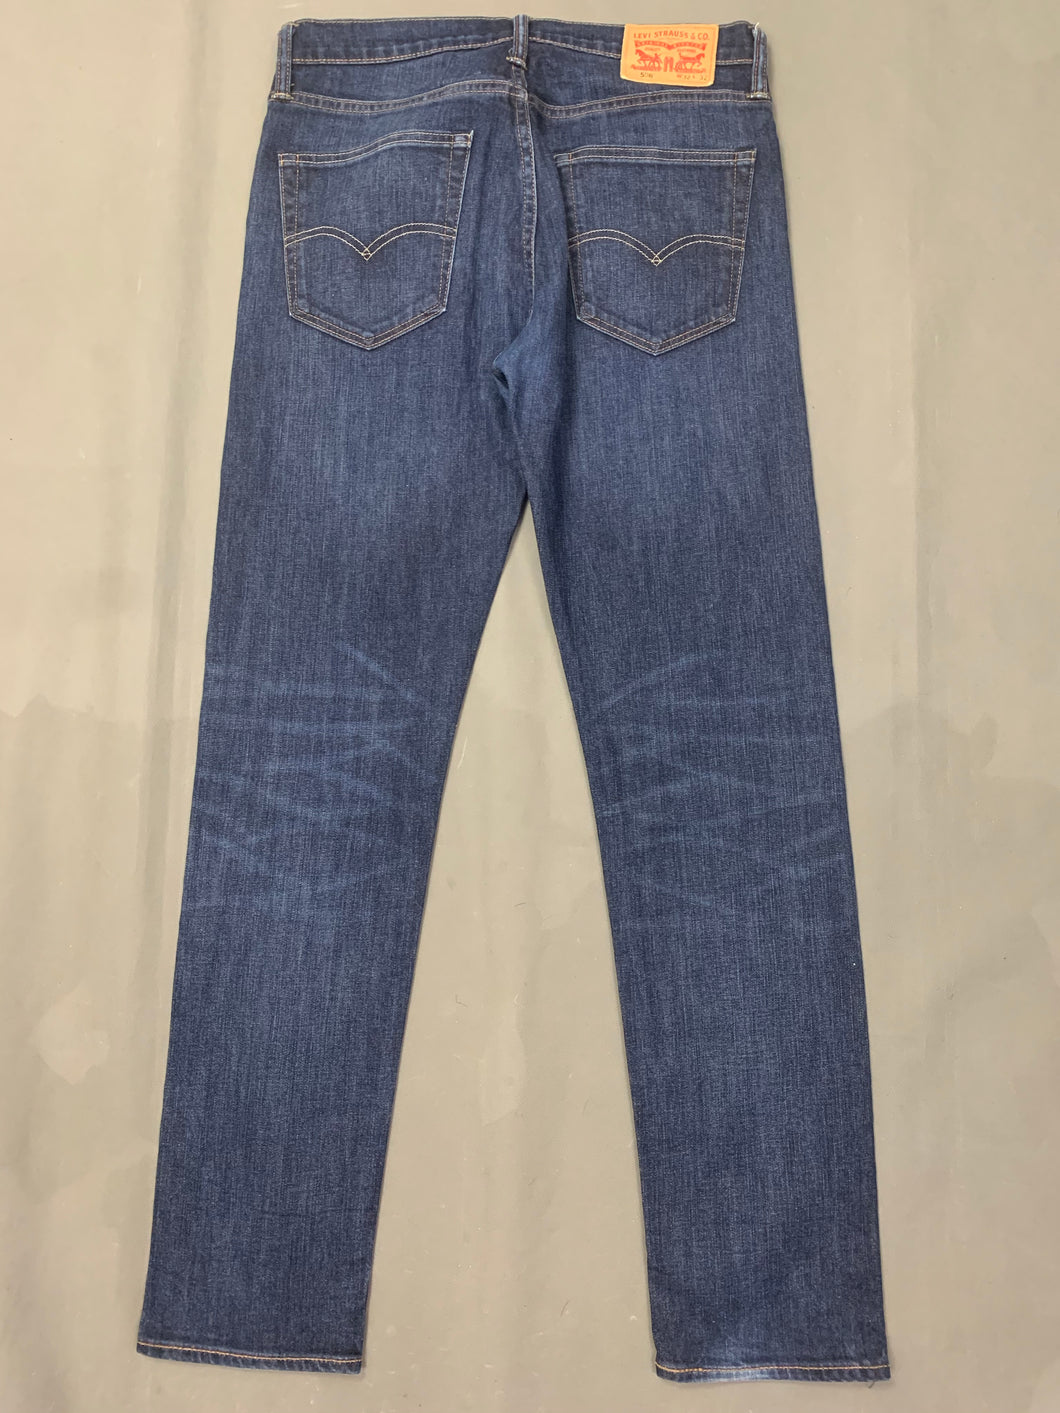 LEVI STRAUSS &Co LEVI'S Blue Denim 508 JEANS Size Waist 32